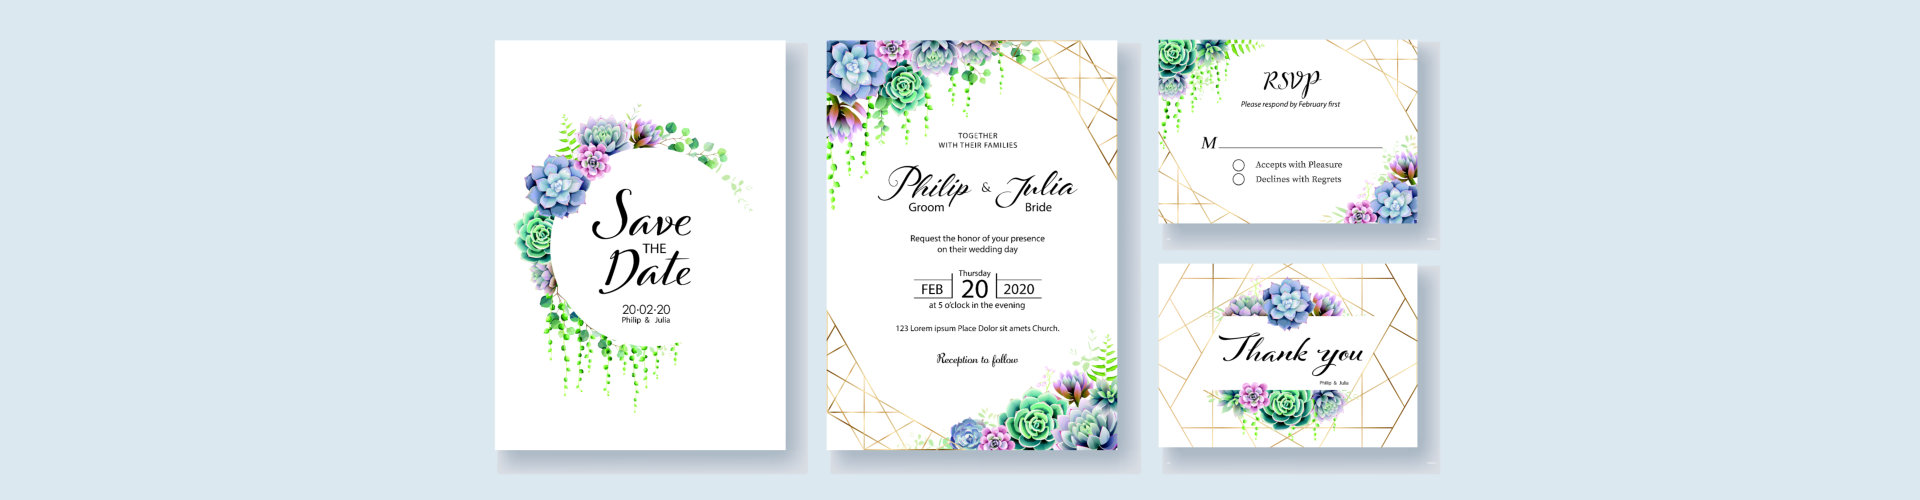 Greenery, succulent and branches Wedding Invitation card, save the date, thank you, rsvp template.